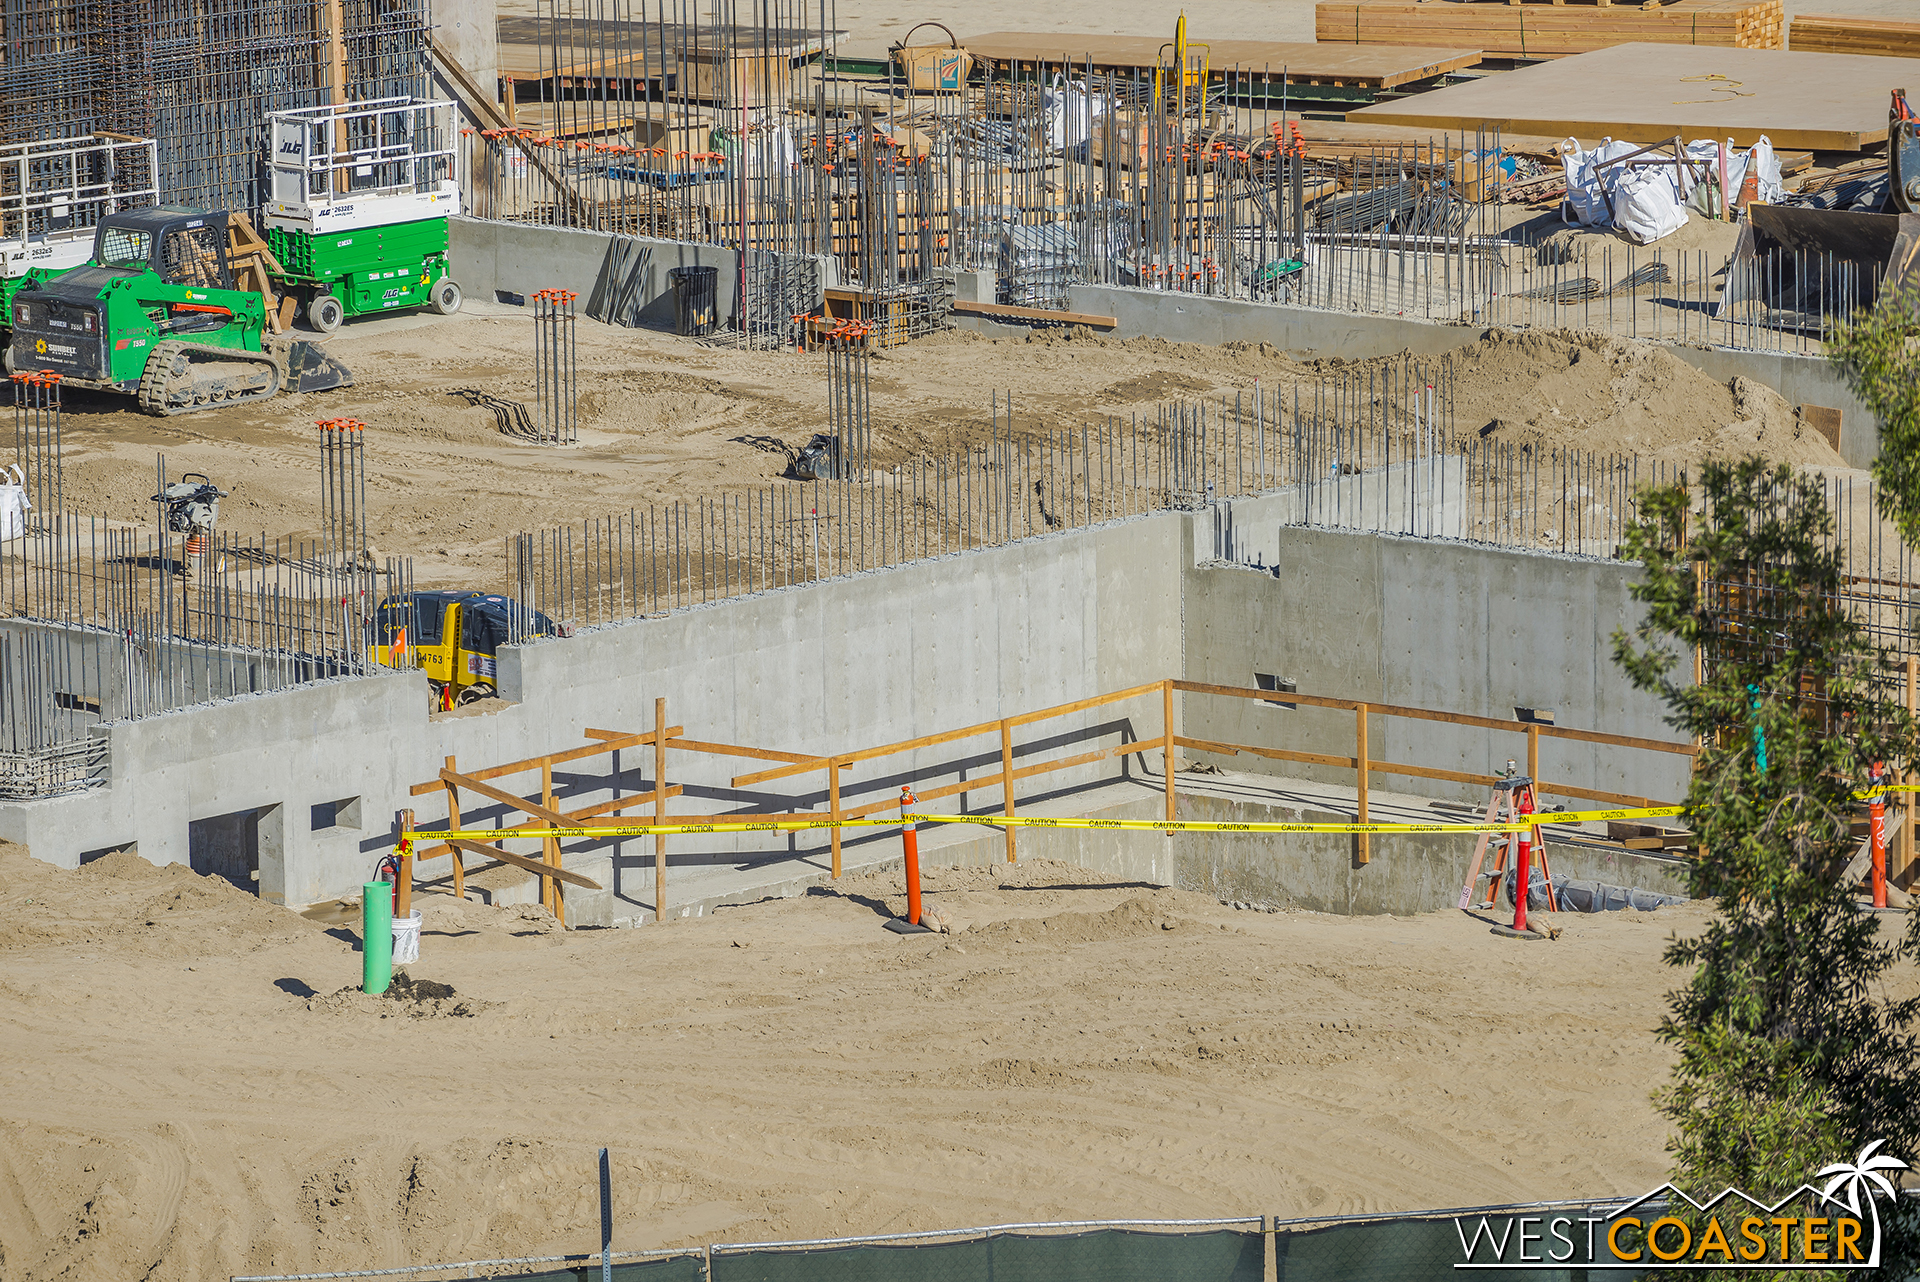 Any site groundwork has been going for utilities that will serve the show buildings.